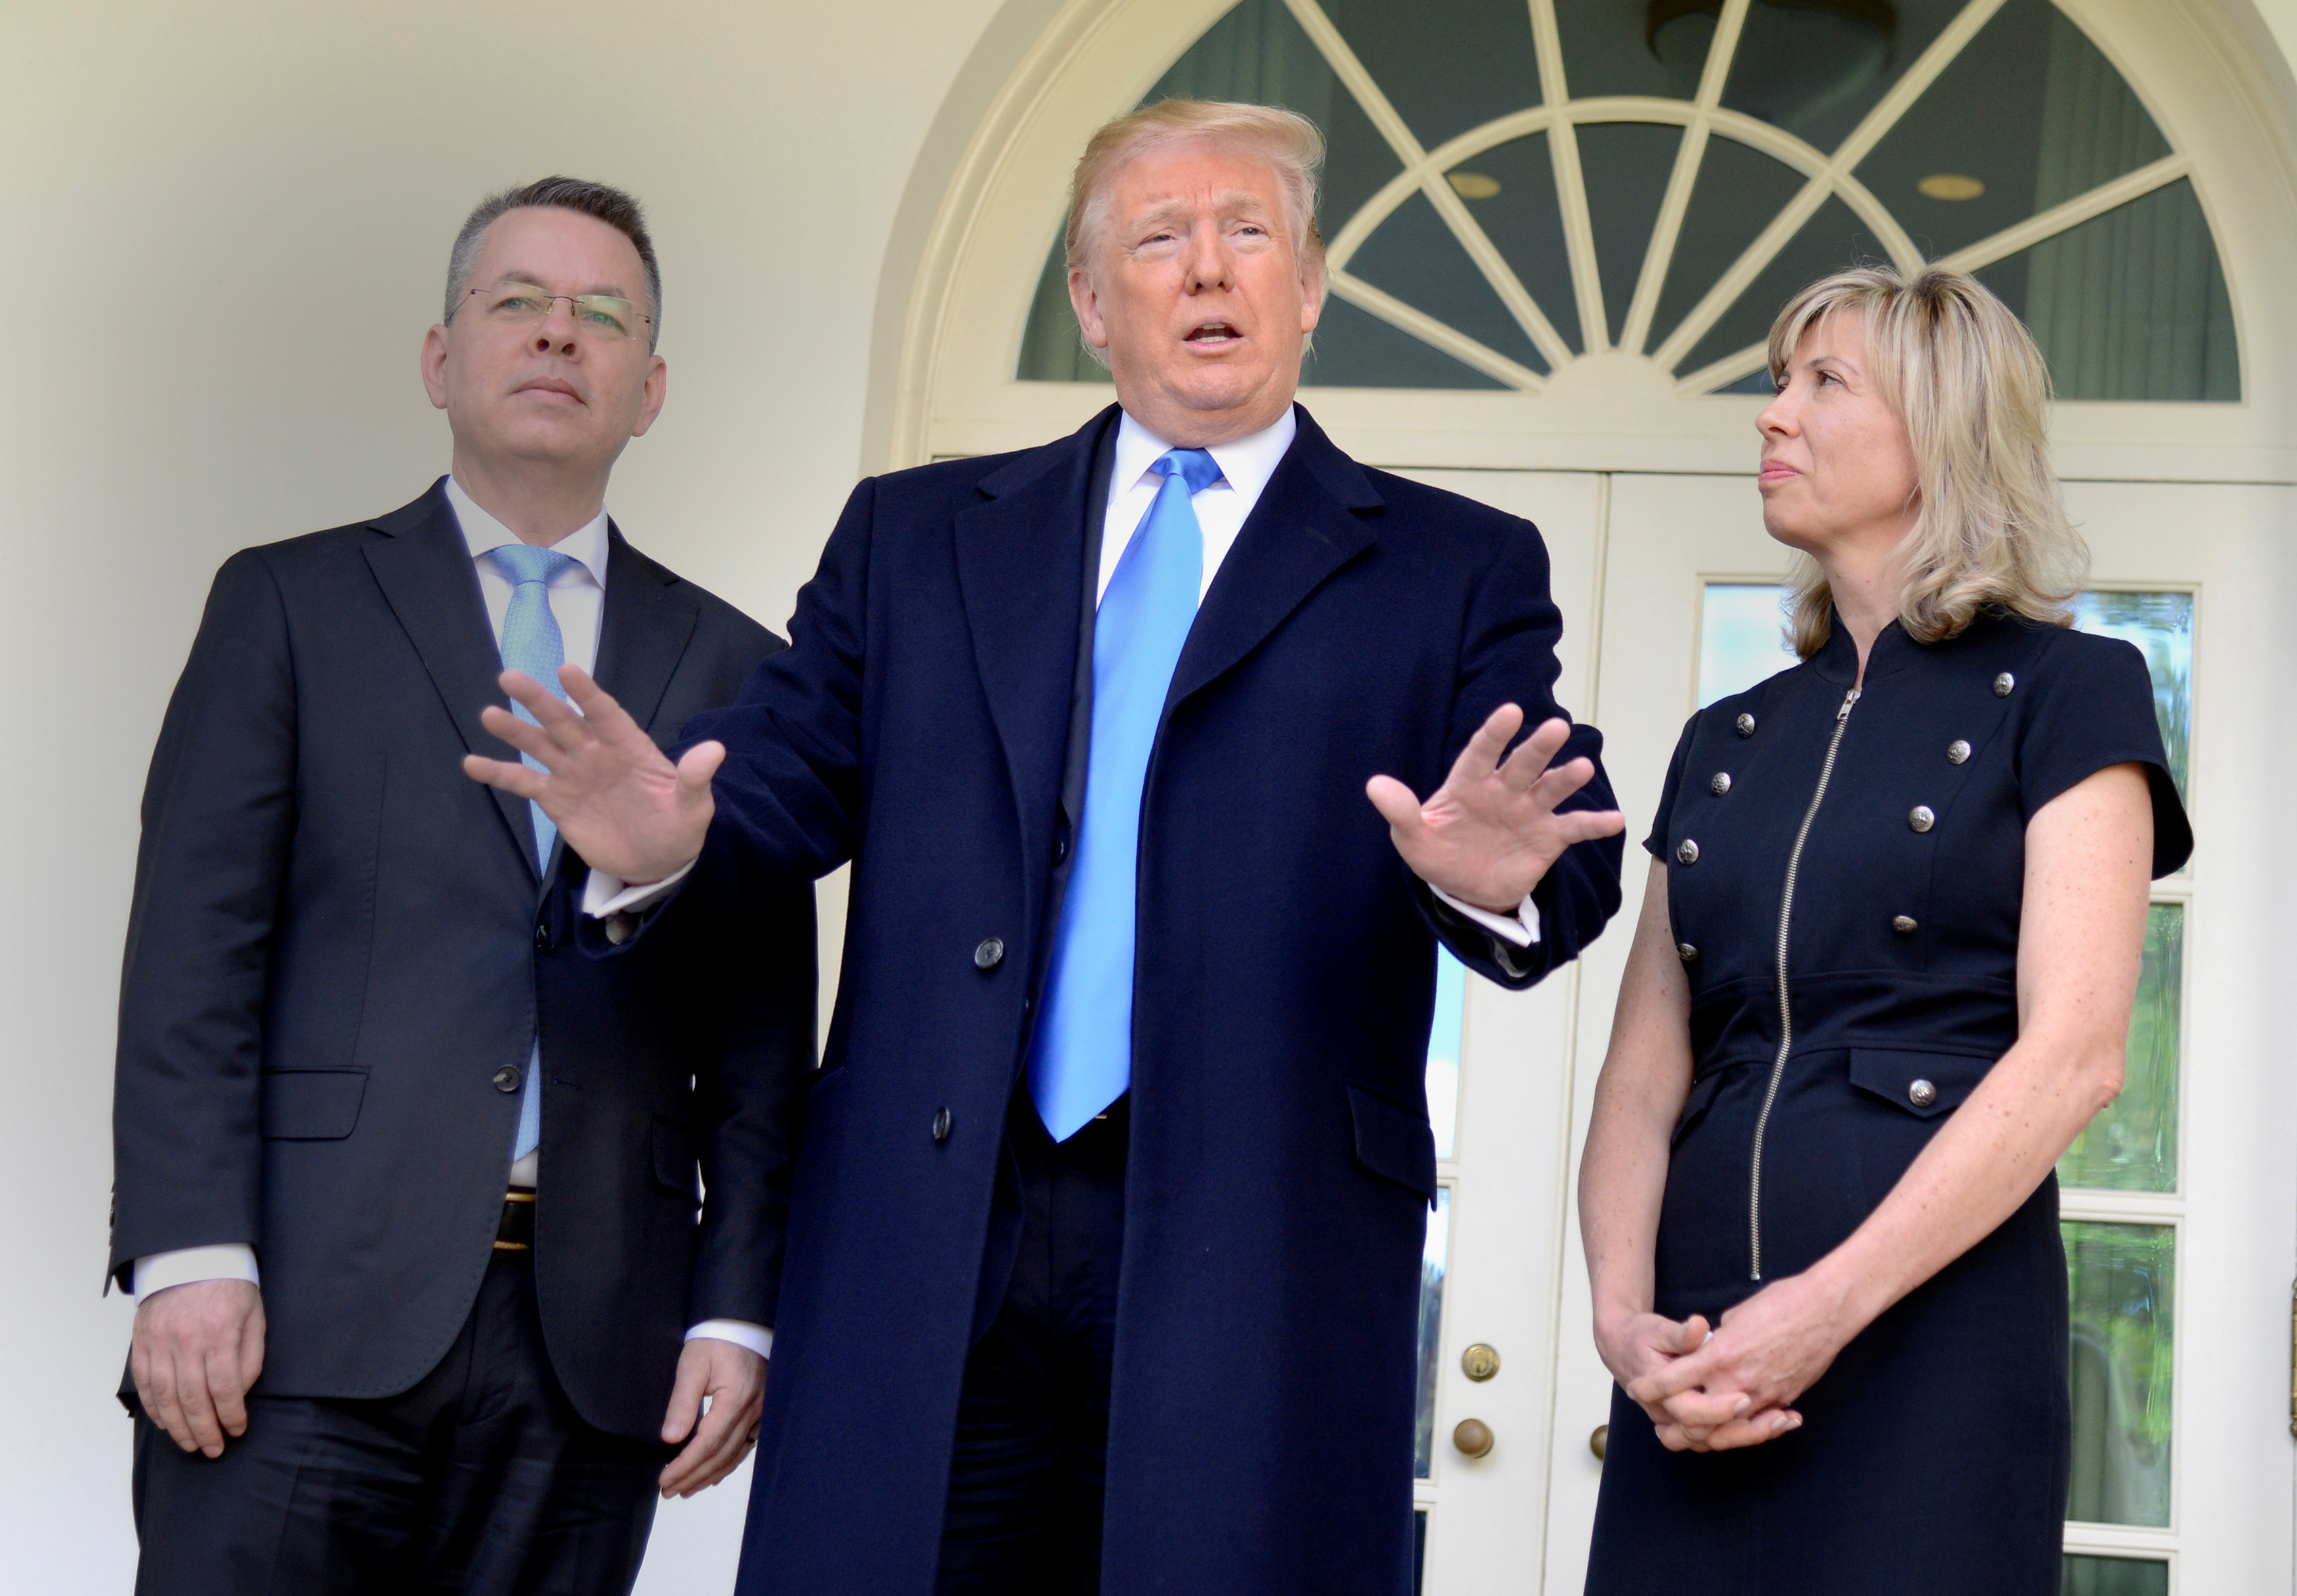 U.S. President Donald Trump speaks to the press prior to welcoming Pastor Andrew Brunson, released from Turkish detention, and his wife Jacqueline, to the Oval Office of the White House, Washington, U.S., October 13, 2018. REUTERS/Mike Theiler - RC13325EADA0